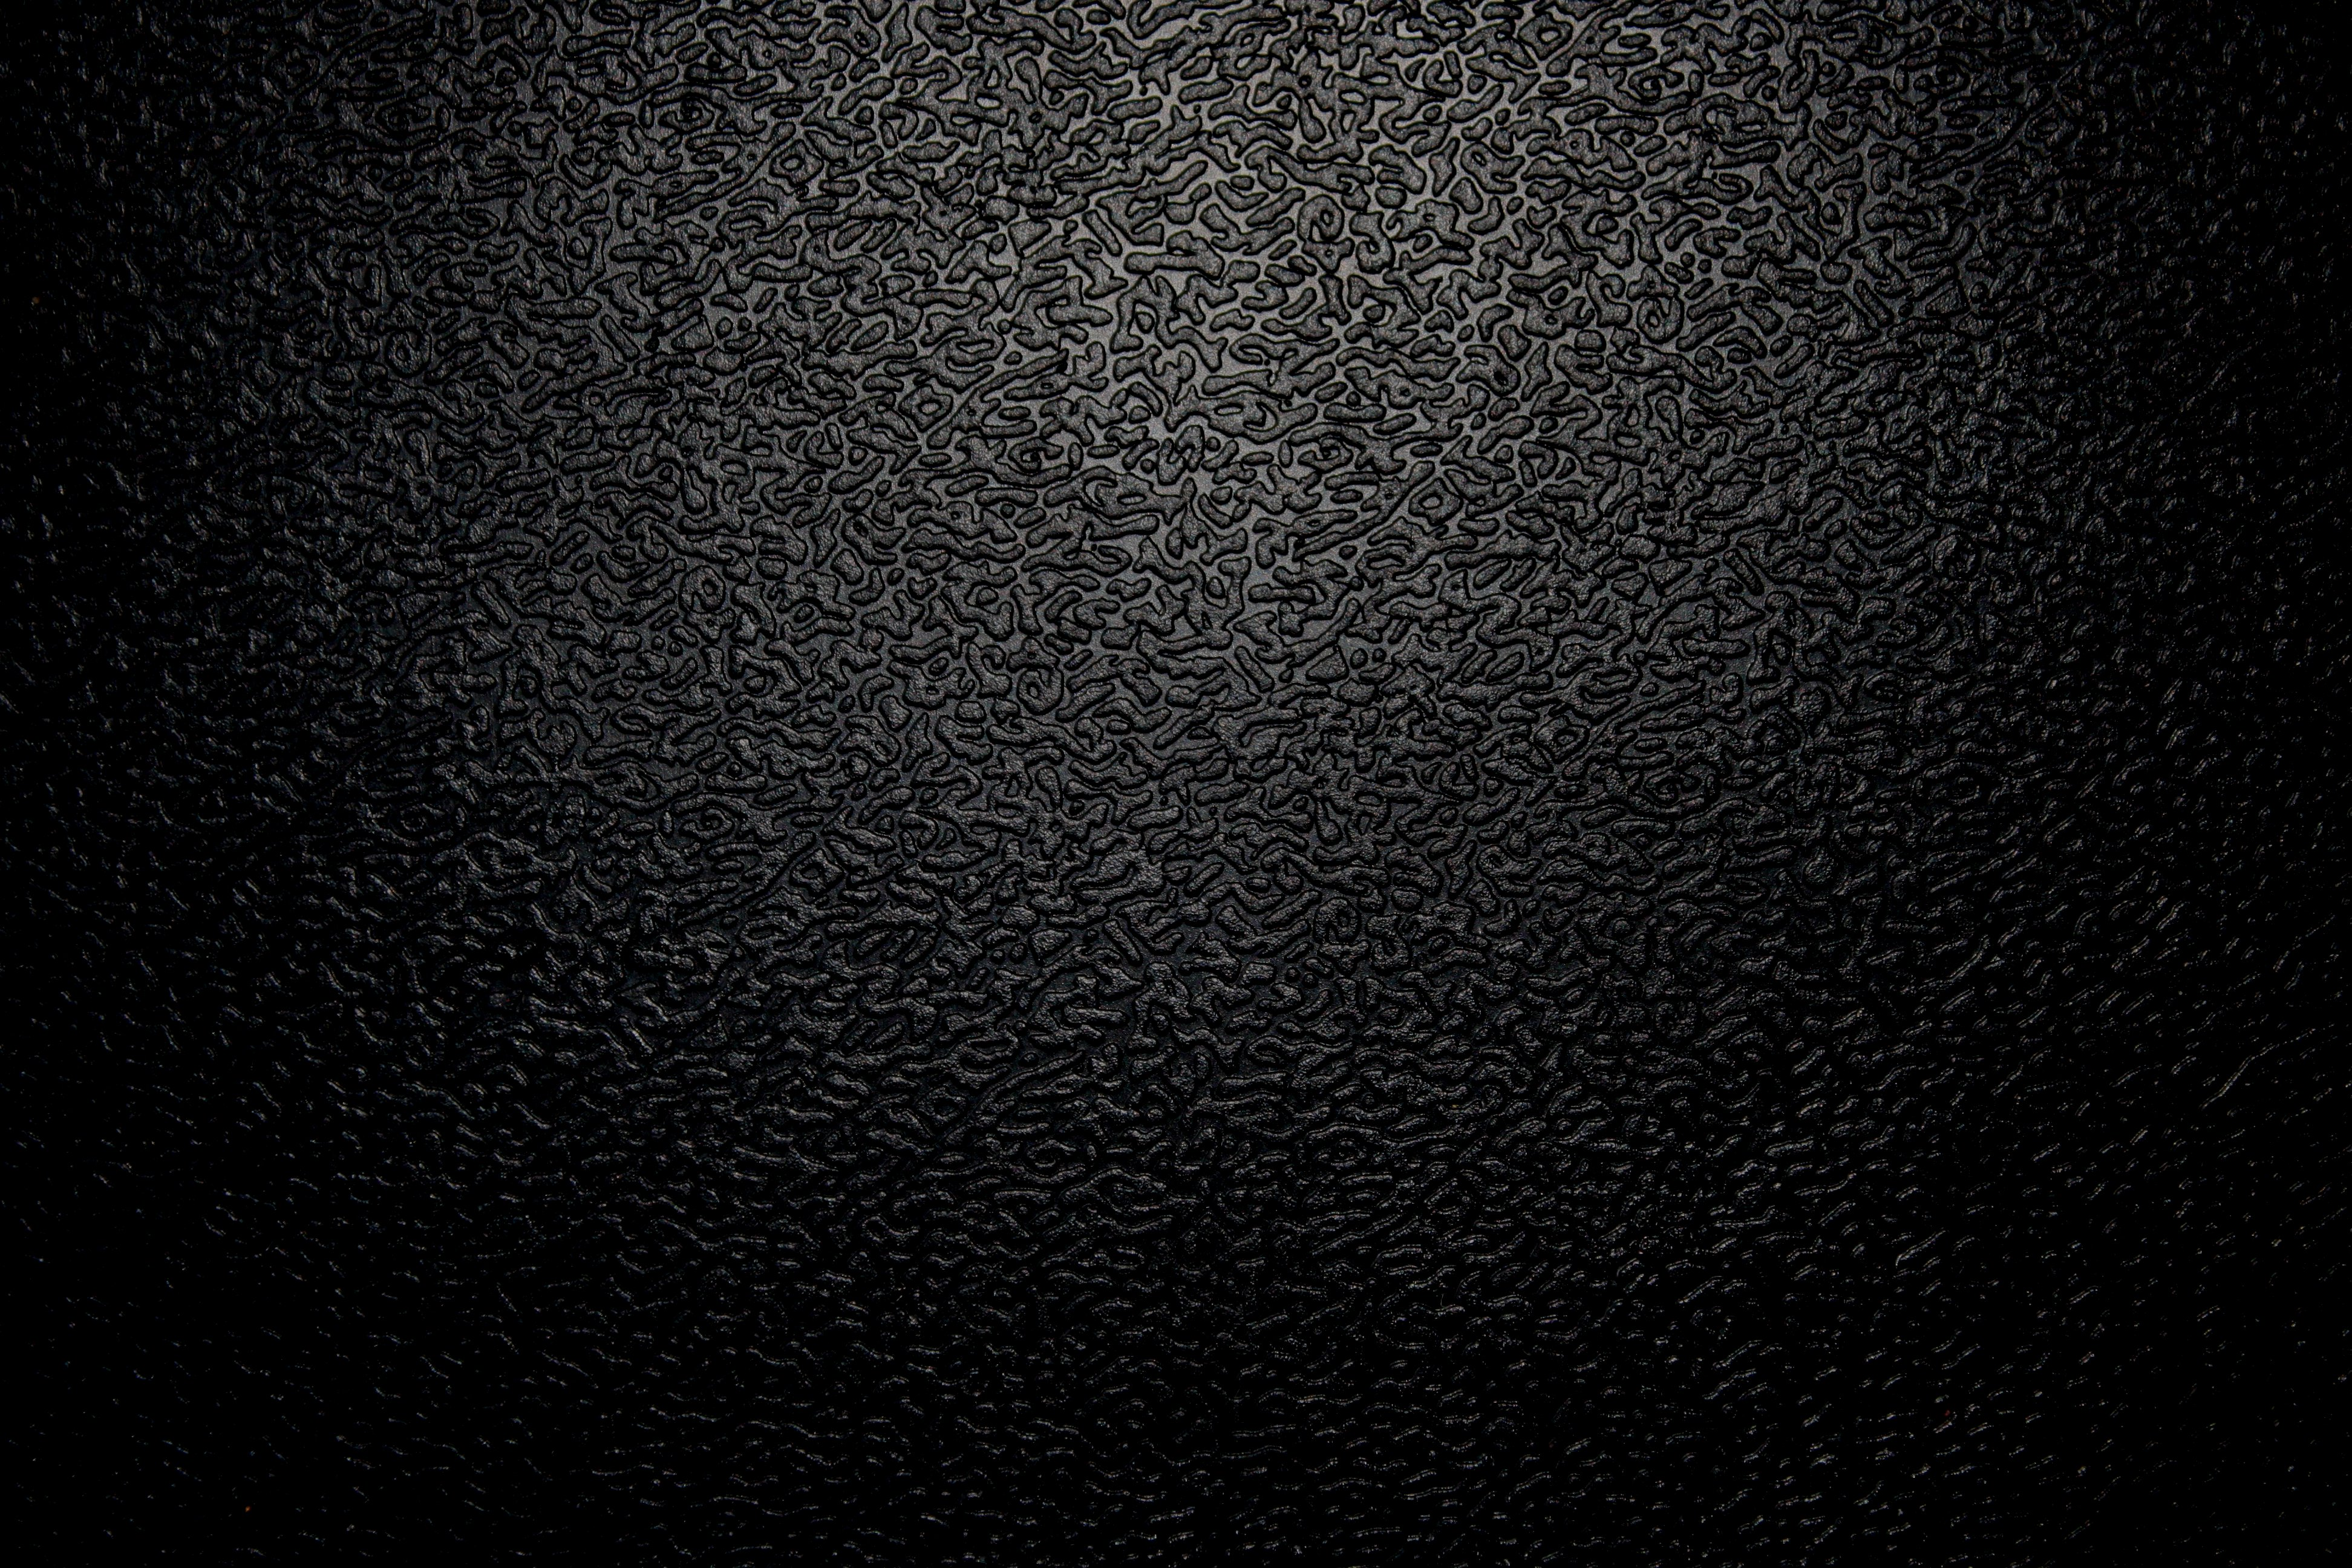 Textured Black Plastic Close Up Picture Free Photograph